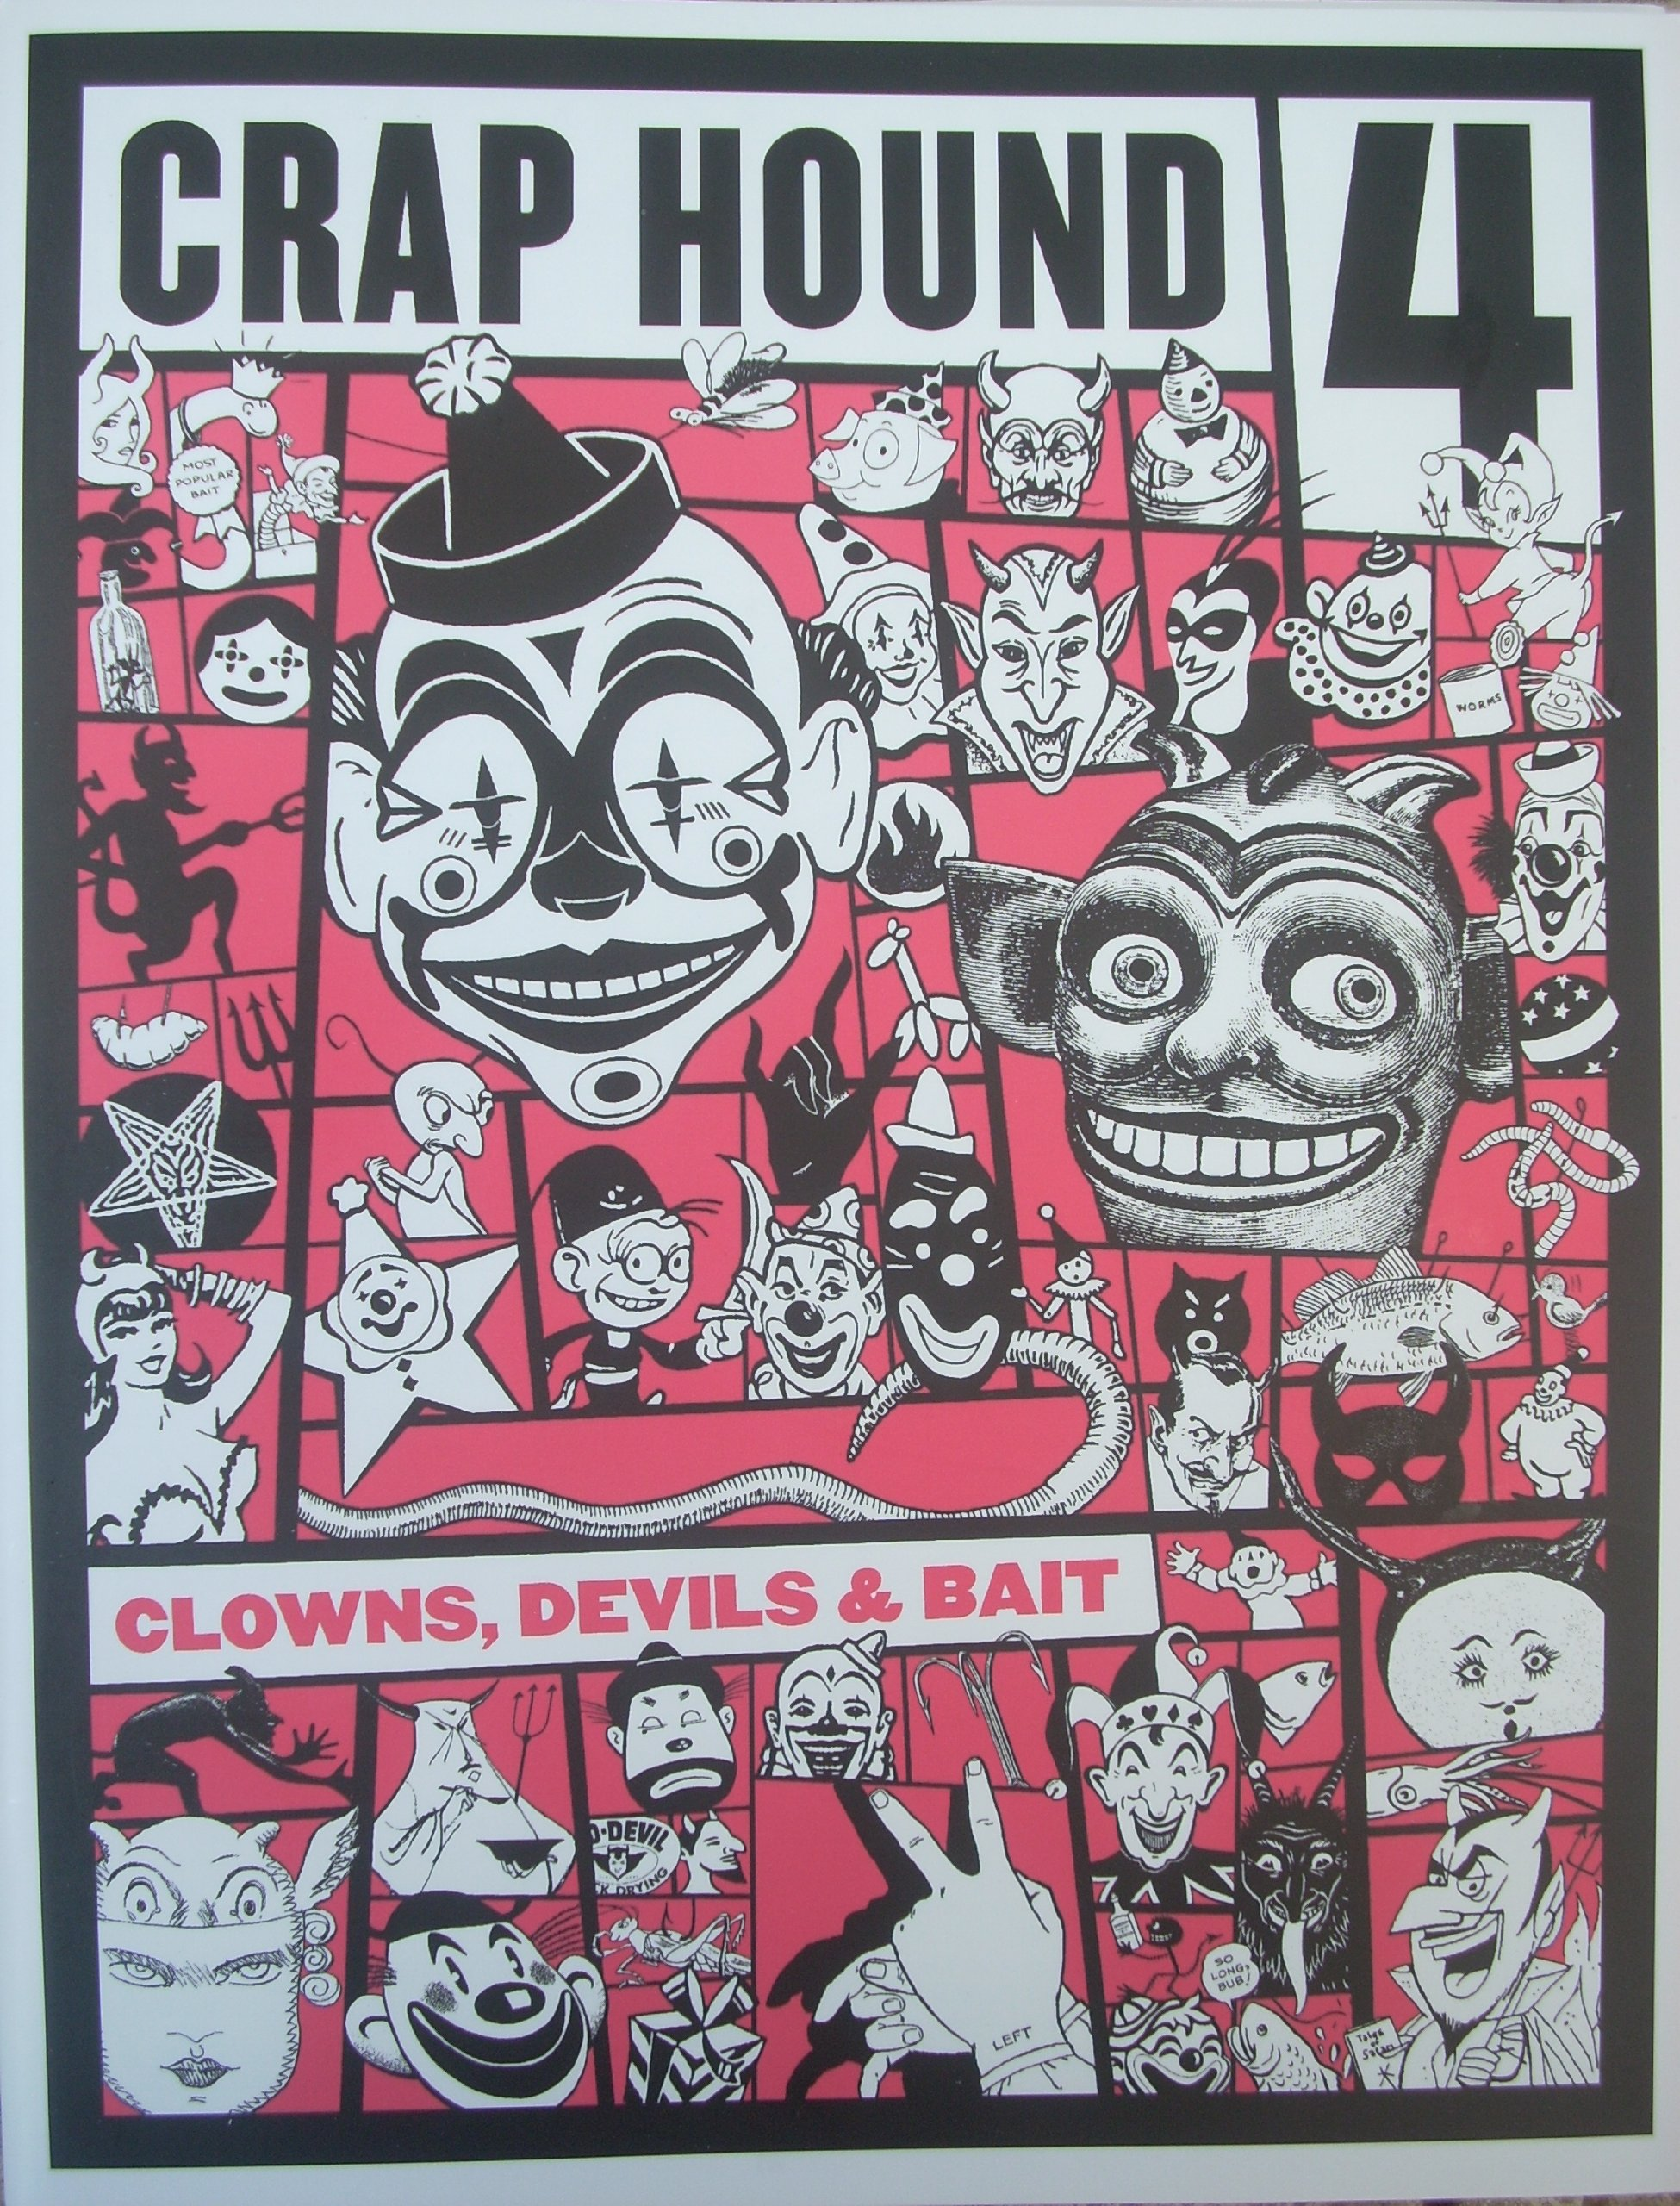 Crap Hound Zine #4: Clowns, Devils & Bait (2nd Ed.)